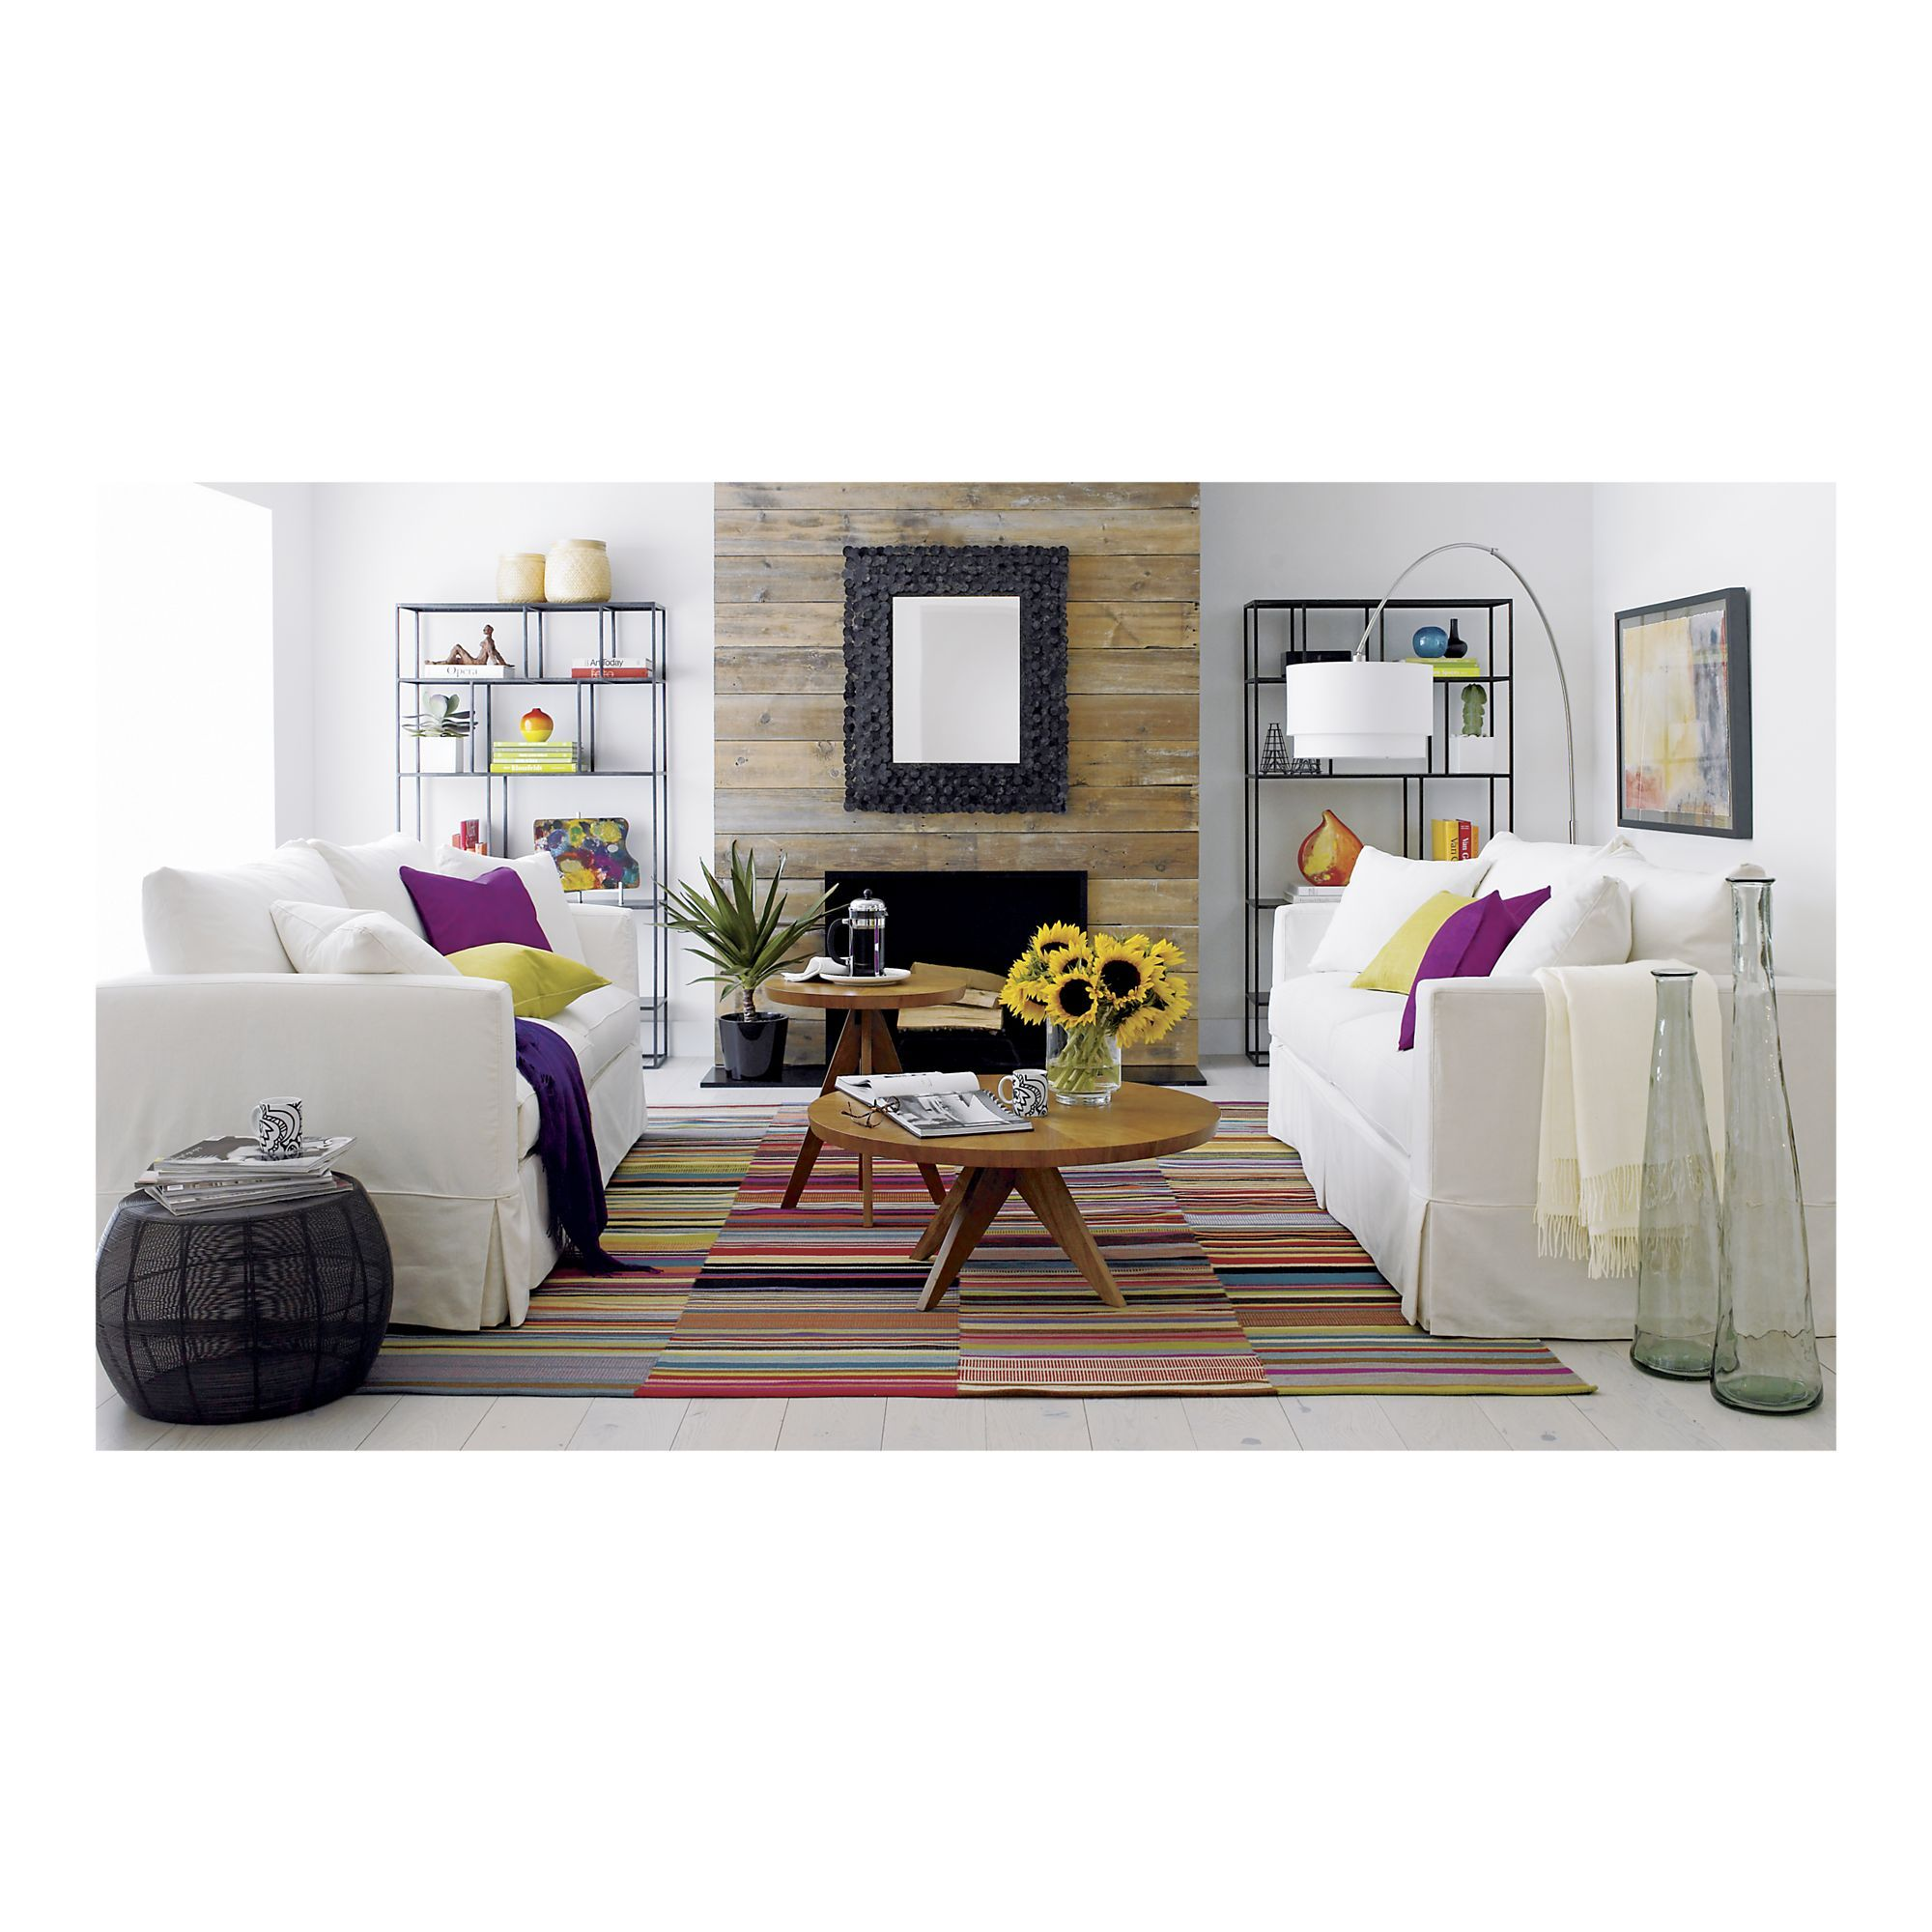 Willow Sofa in Sofas Crate and Barrel Room design is